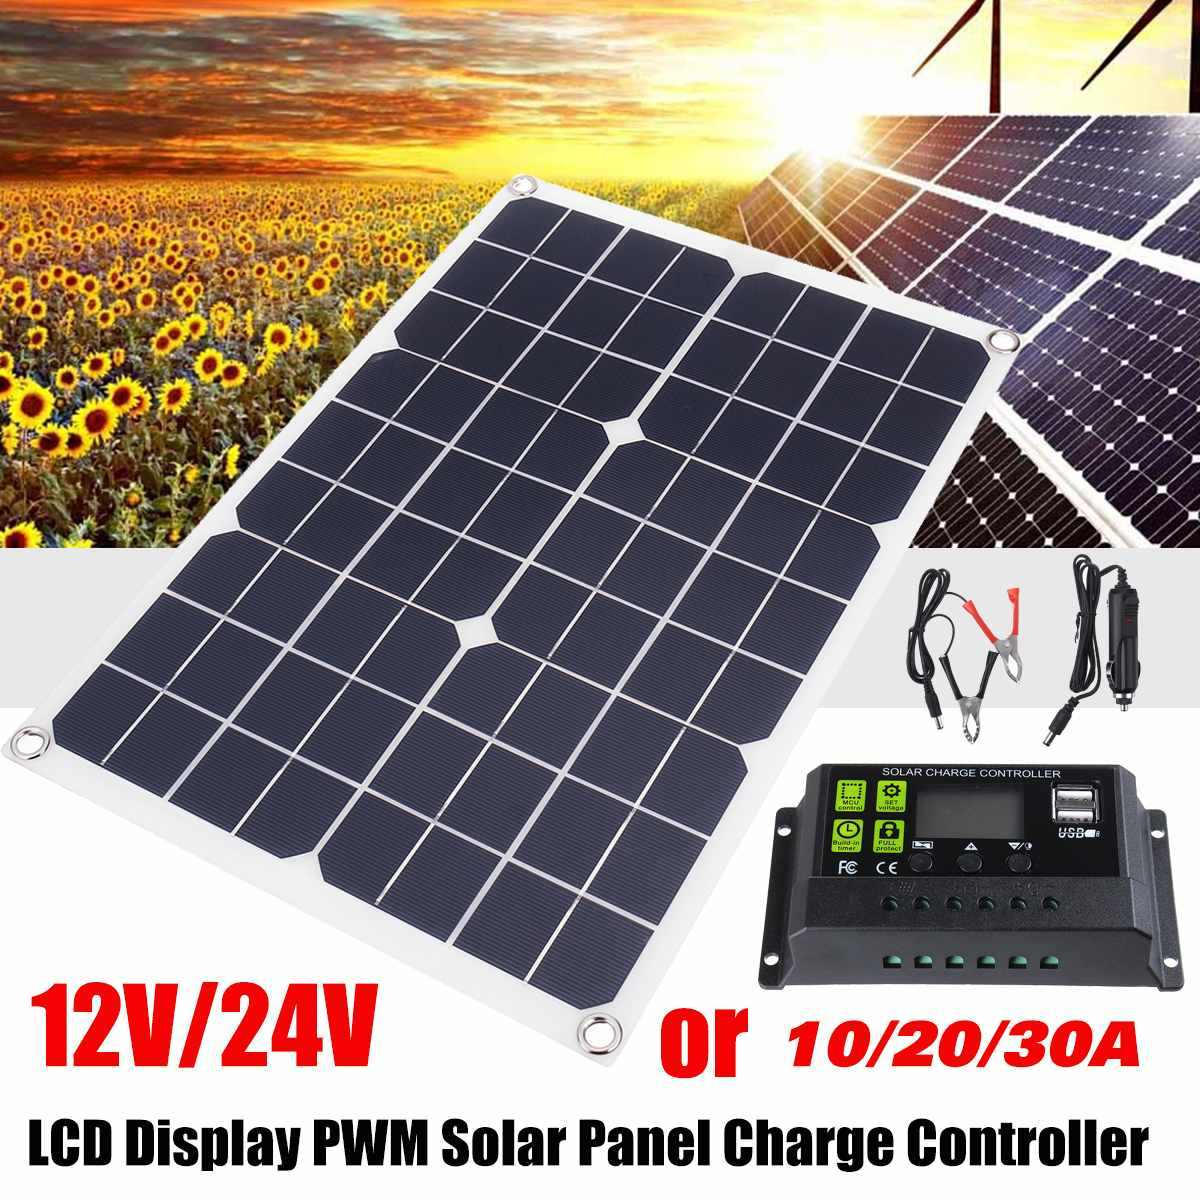 50W 12V/24V Solar Panel 2 USB Power Bank Board External Battery Charging Solar Cell Crocodile Clips Car charger Solar Controller